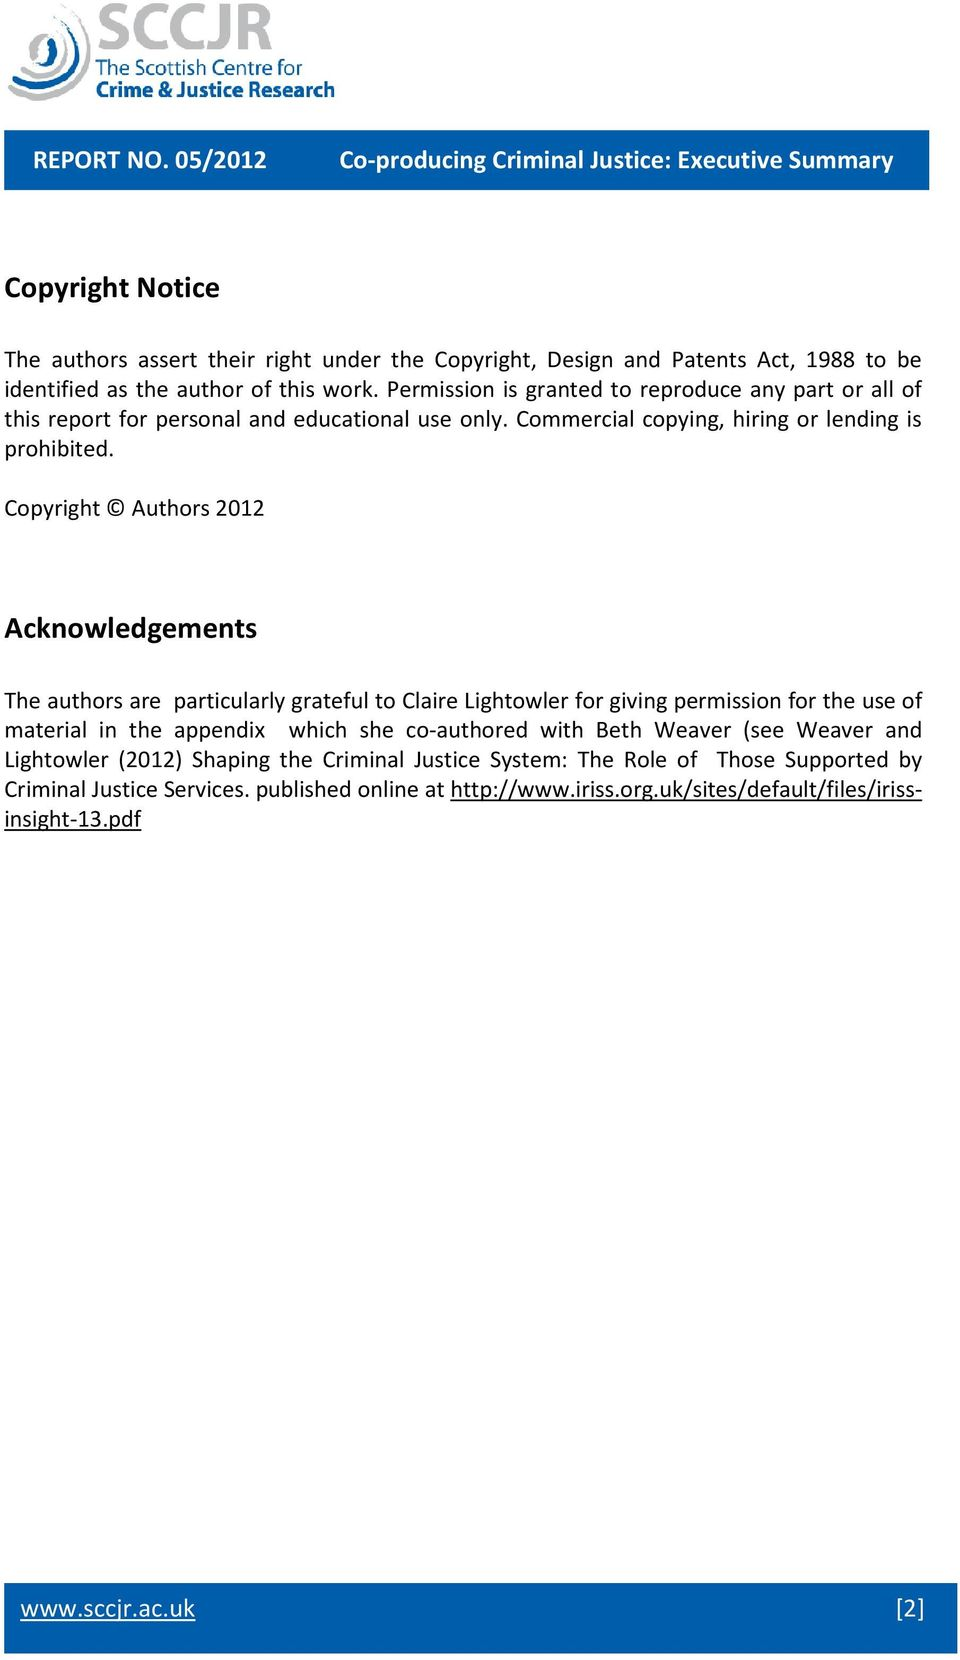 Copyright Authors 2012 Acknowledgements The authors are particularly grateful to Claire Lightowler for giving permission for the use of material in the appendix which she co-authored